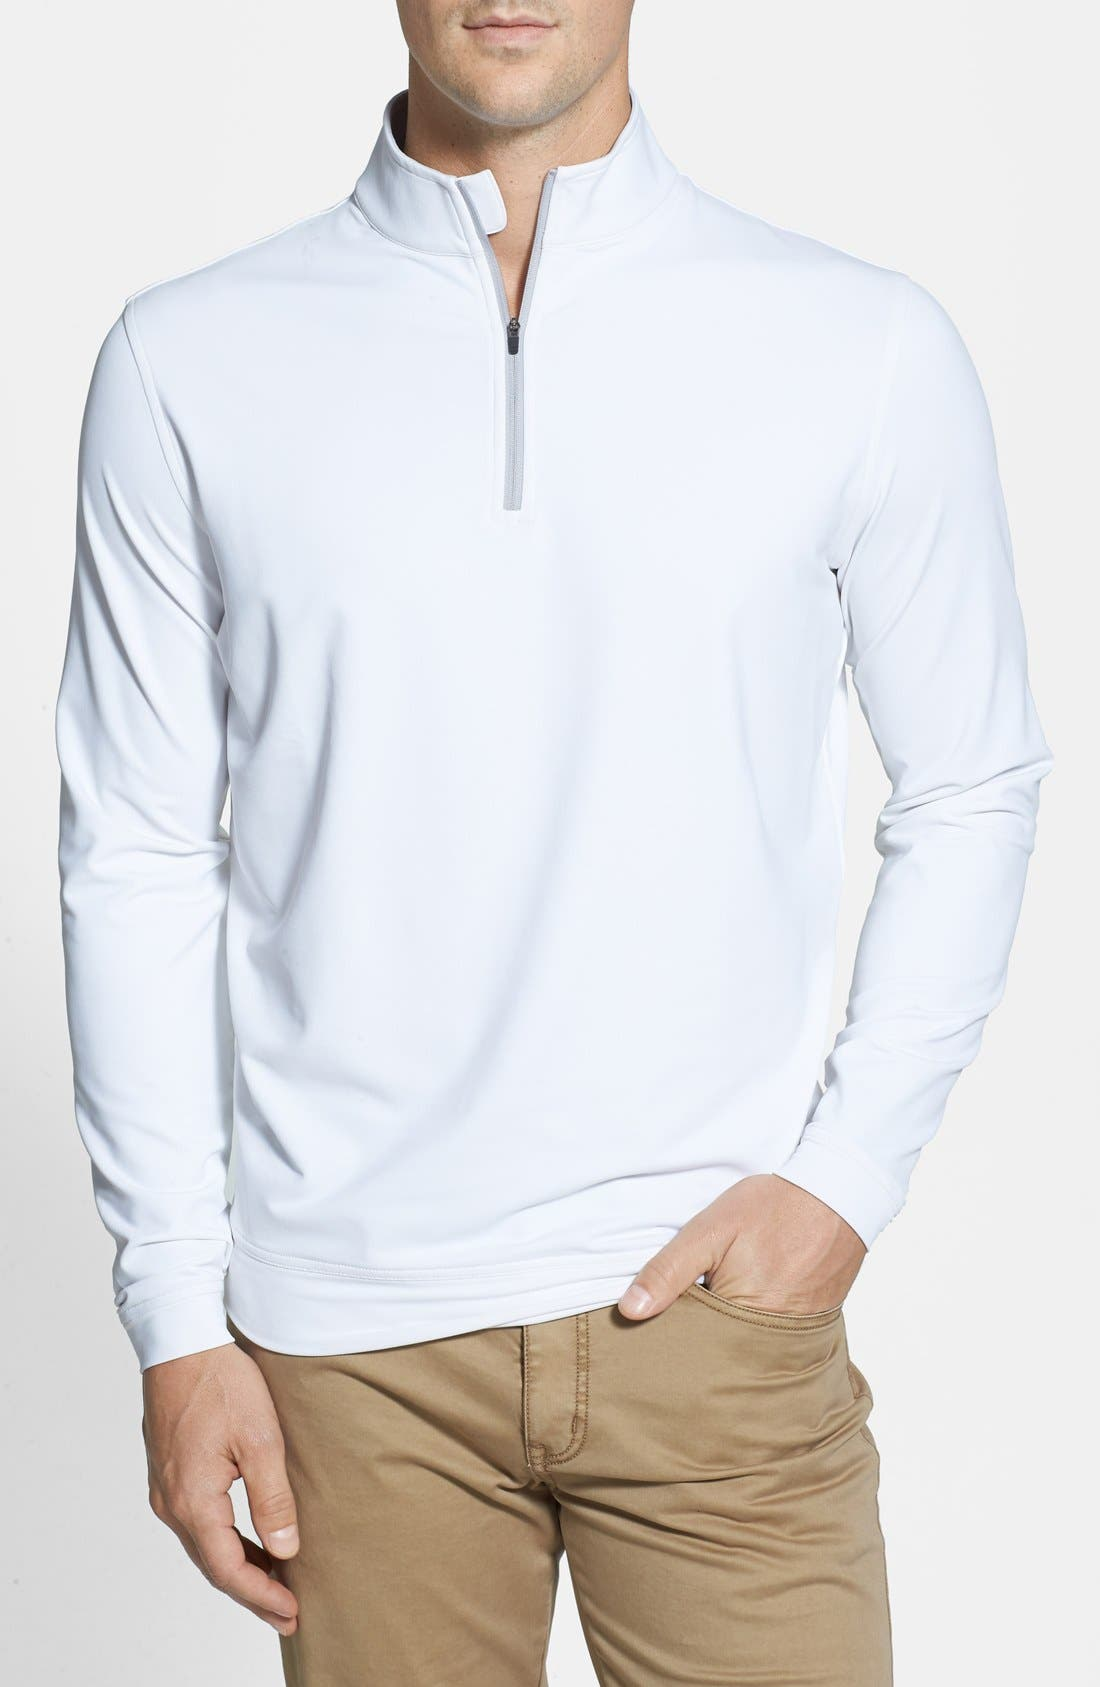 Main Image - Peter Millar Moisture Wicking Stretch Quarter Zip Jacket